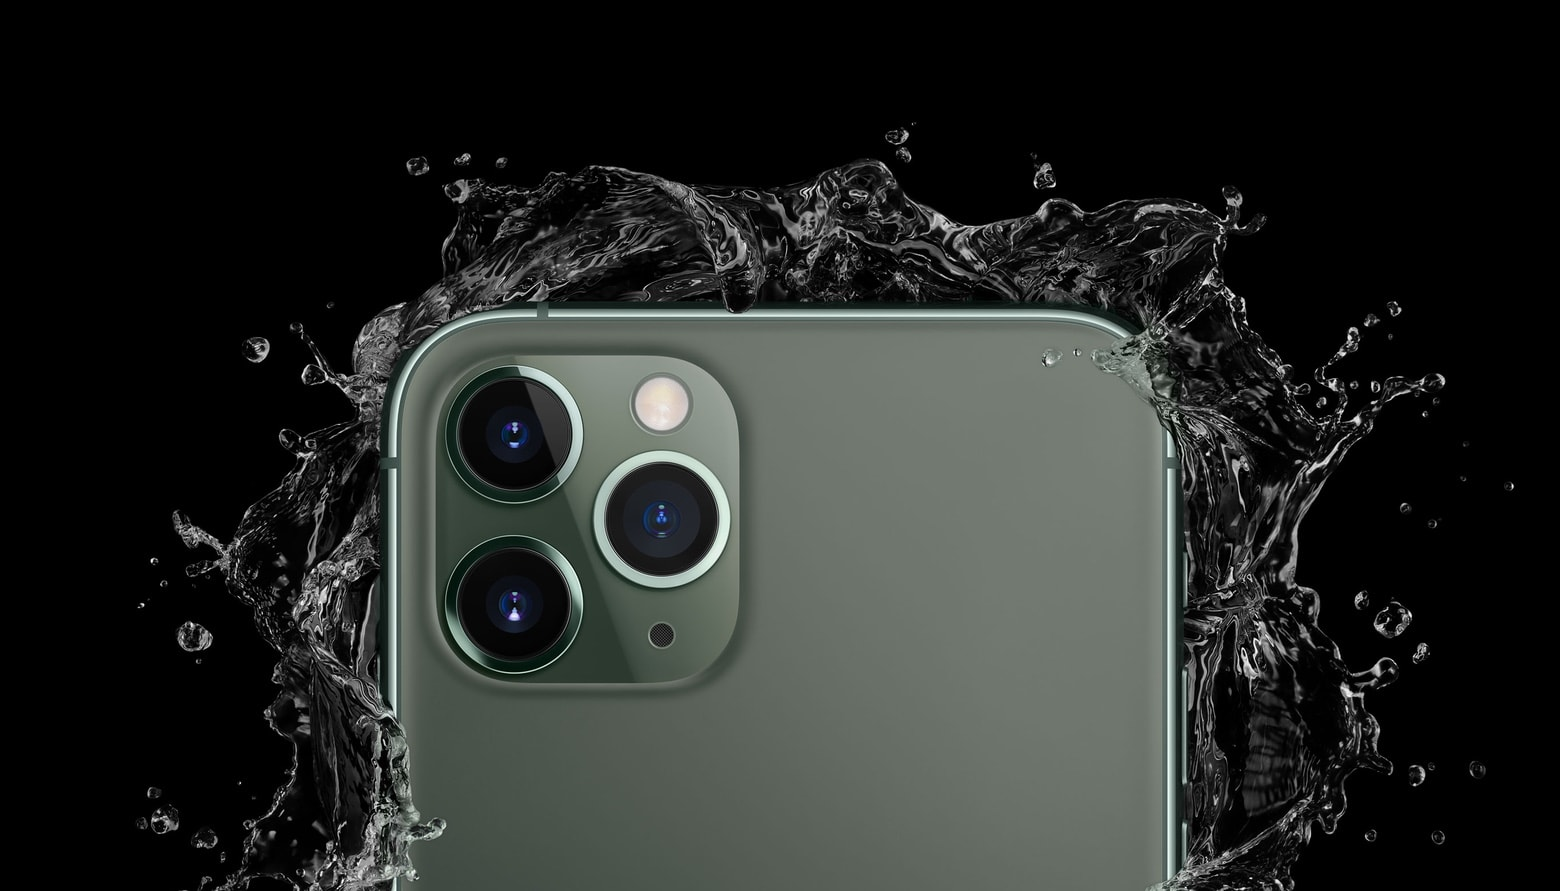 iPhone 11 camera lenses